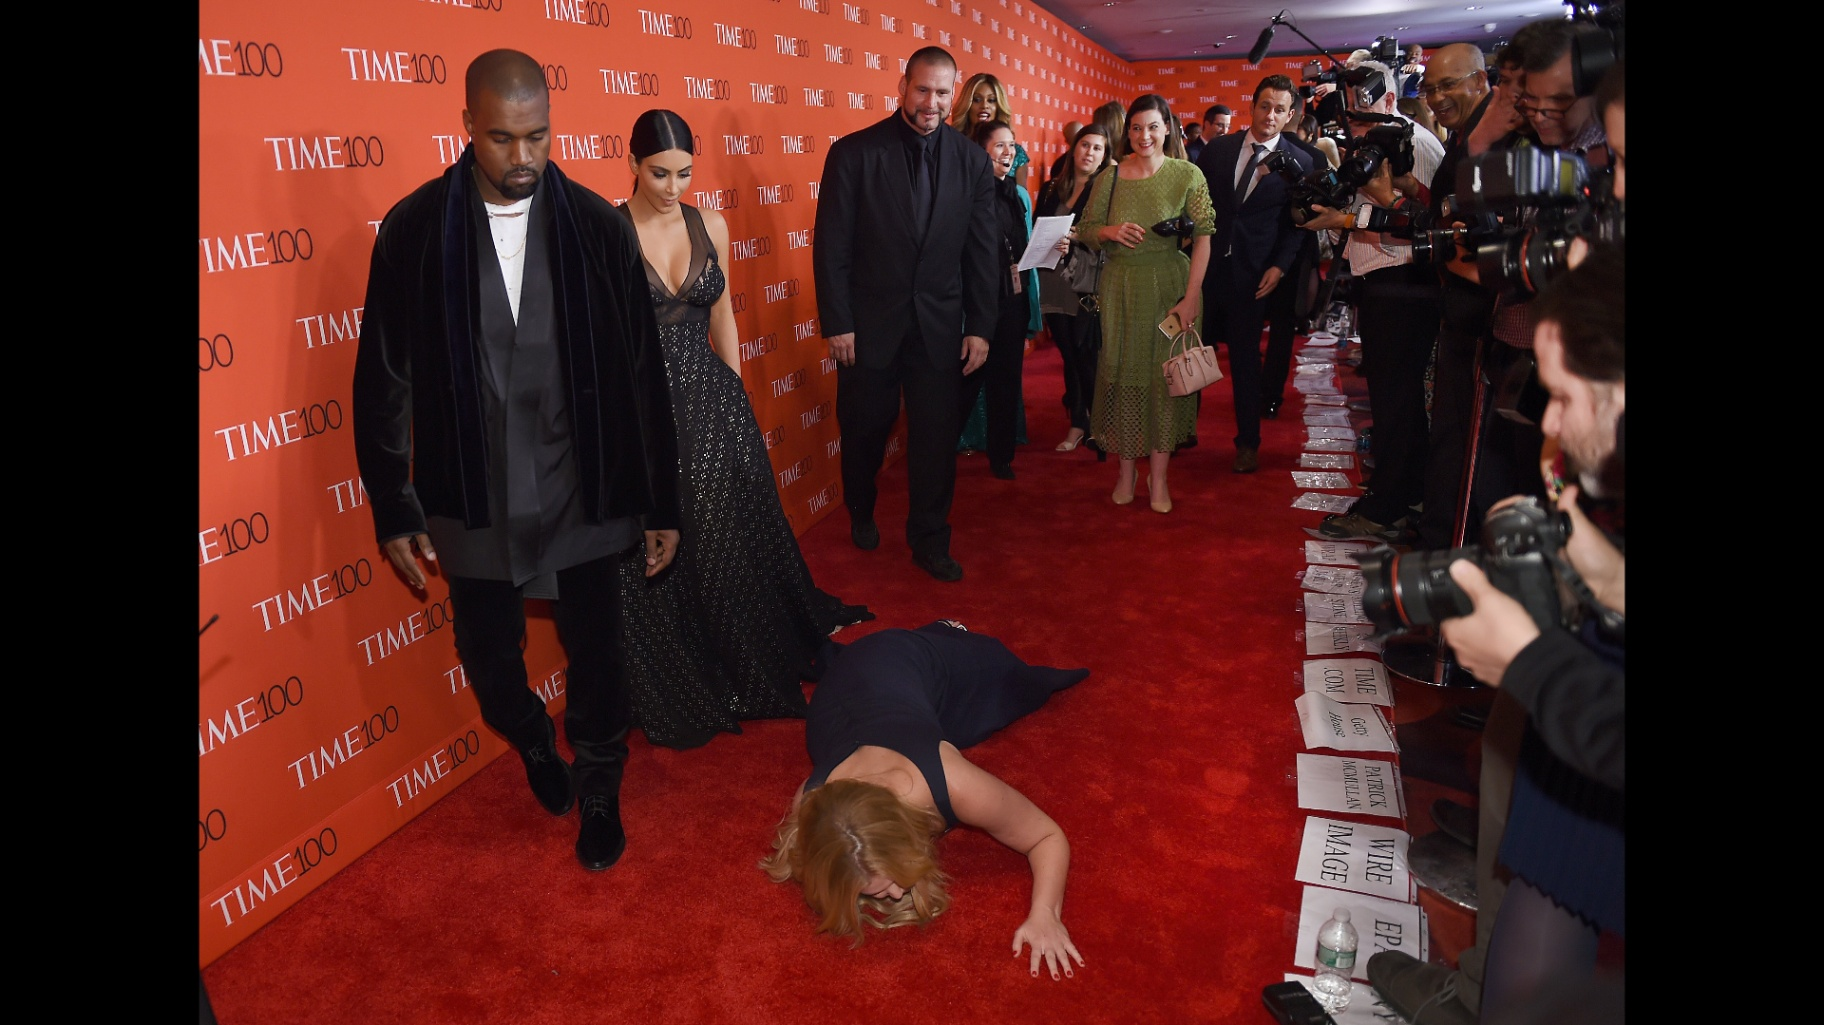 Check Out these Cringe-Worthy Red Carpet Moments